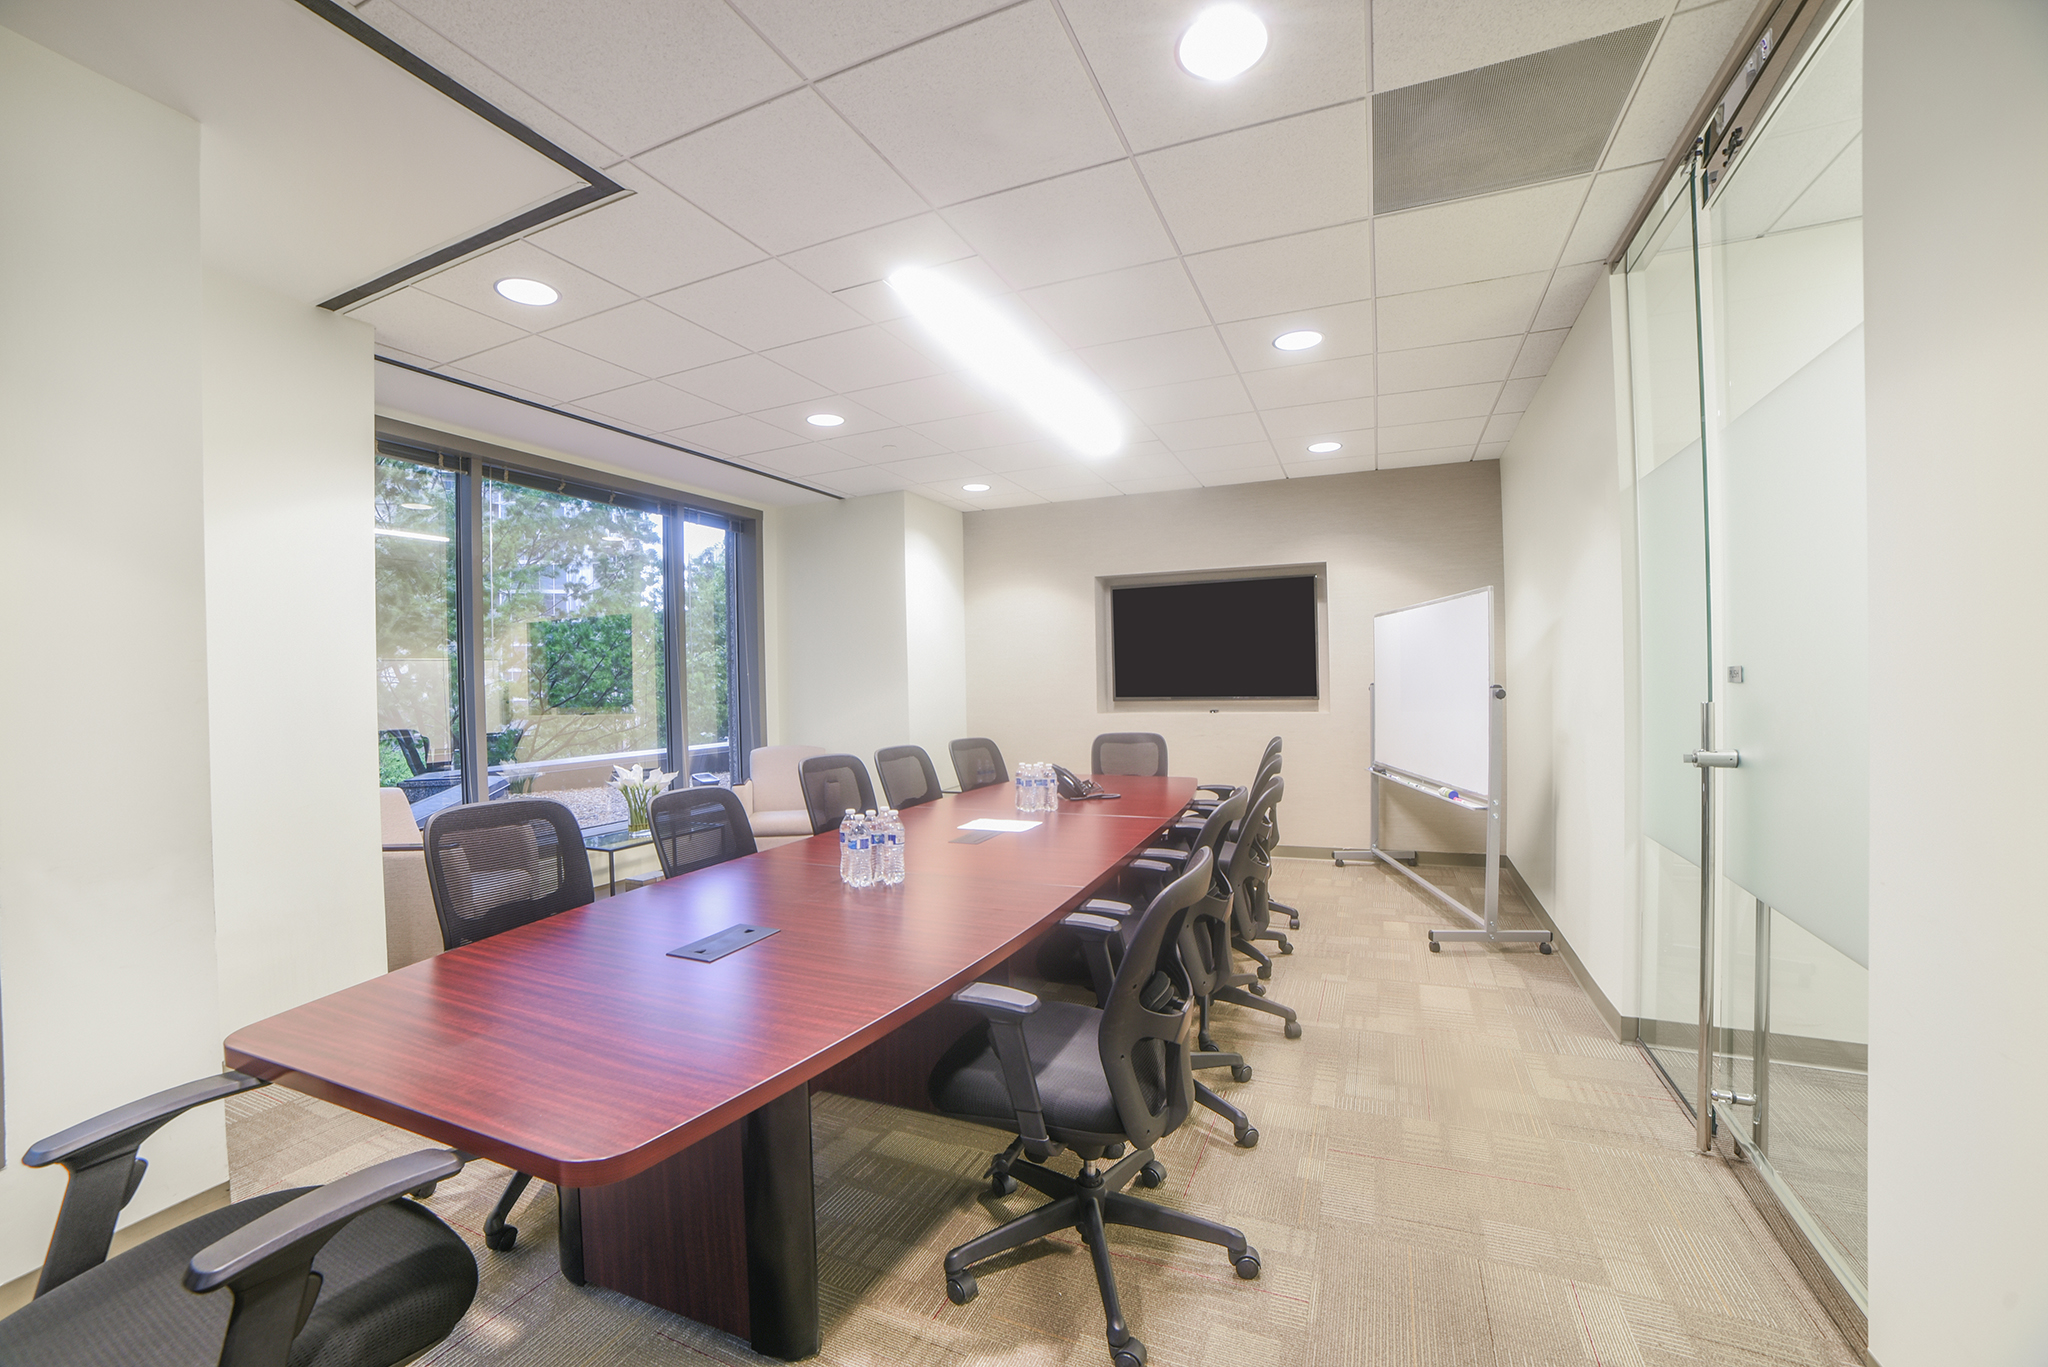 48 Person Corporate Meeting & Presentation Room